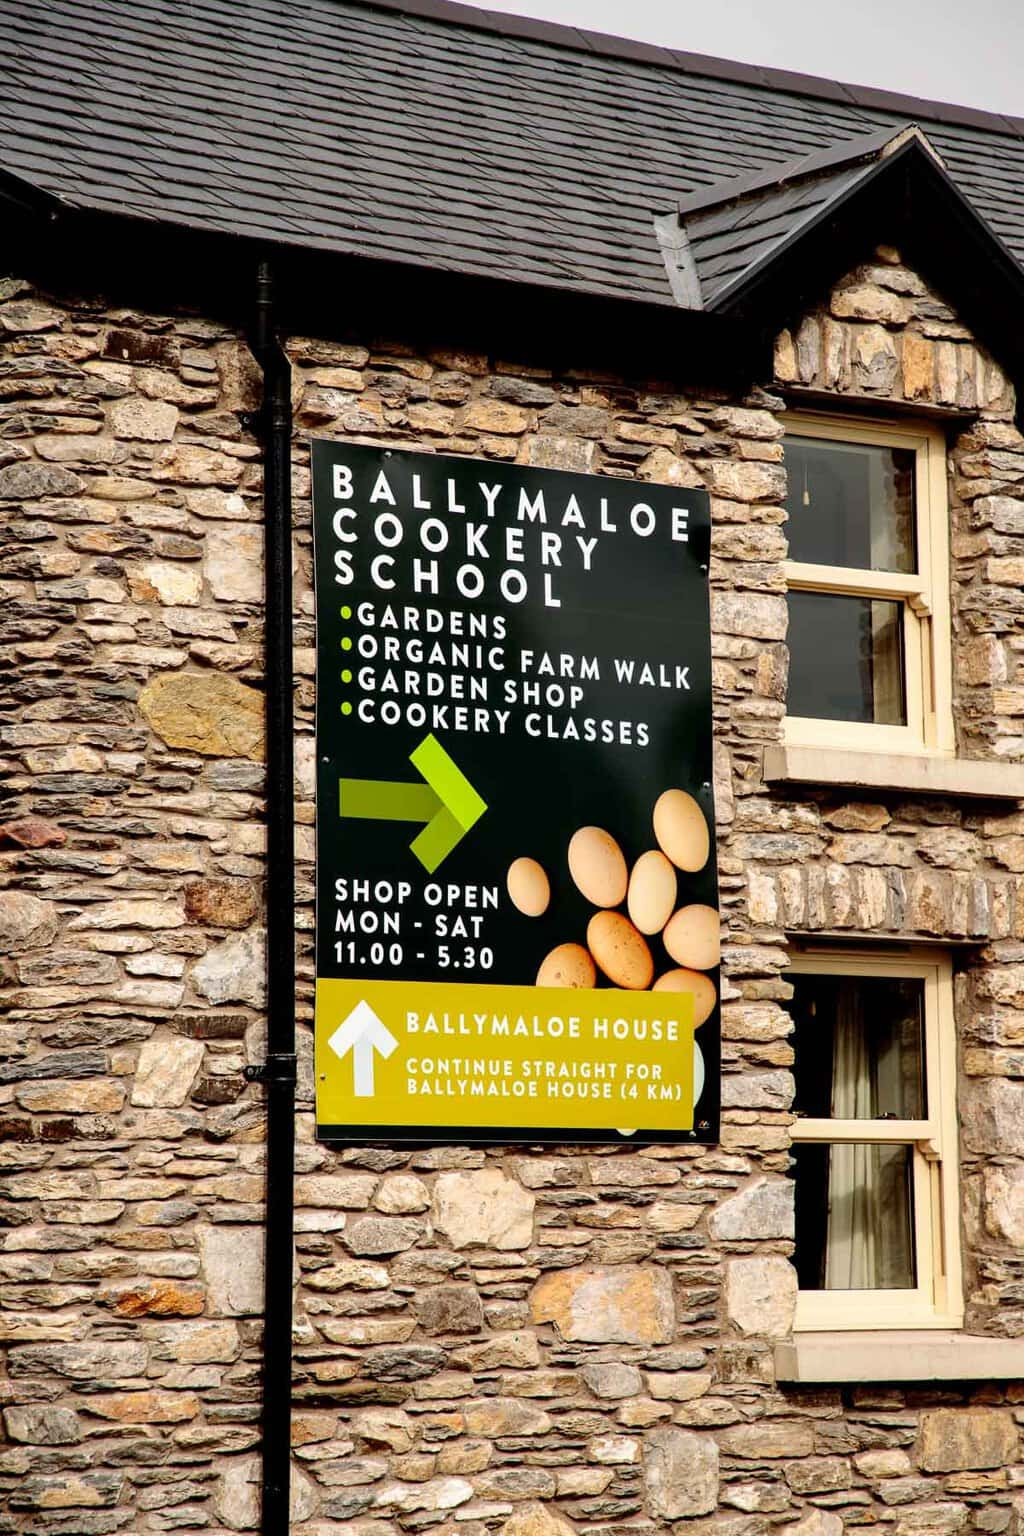 Photo of the Ballymaloe Cookery School sign on a stone building.